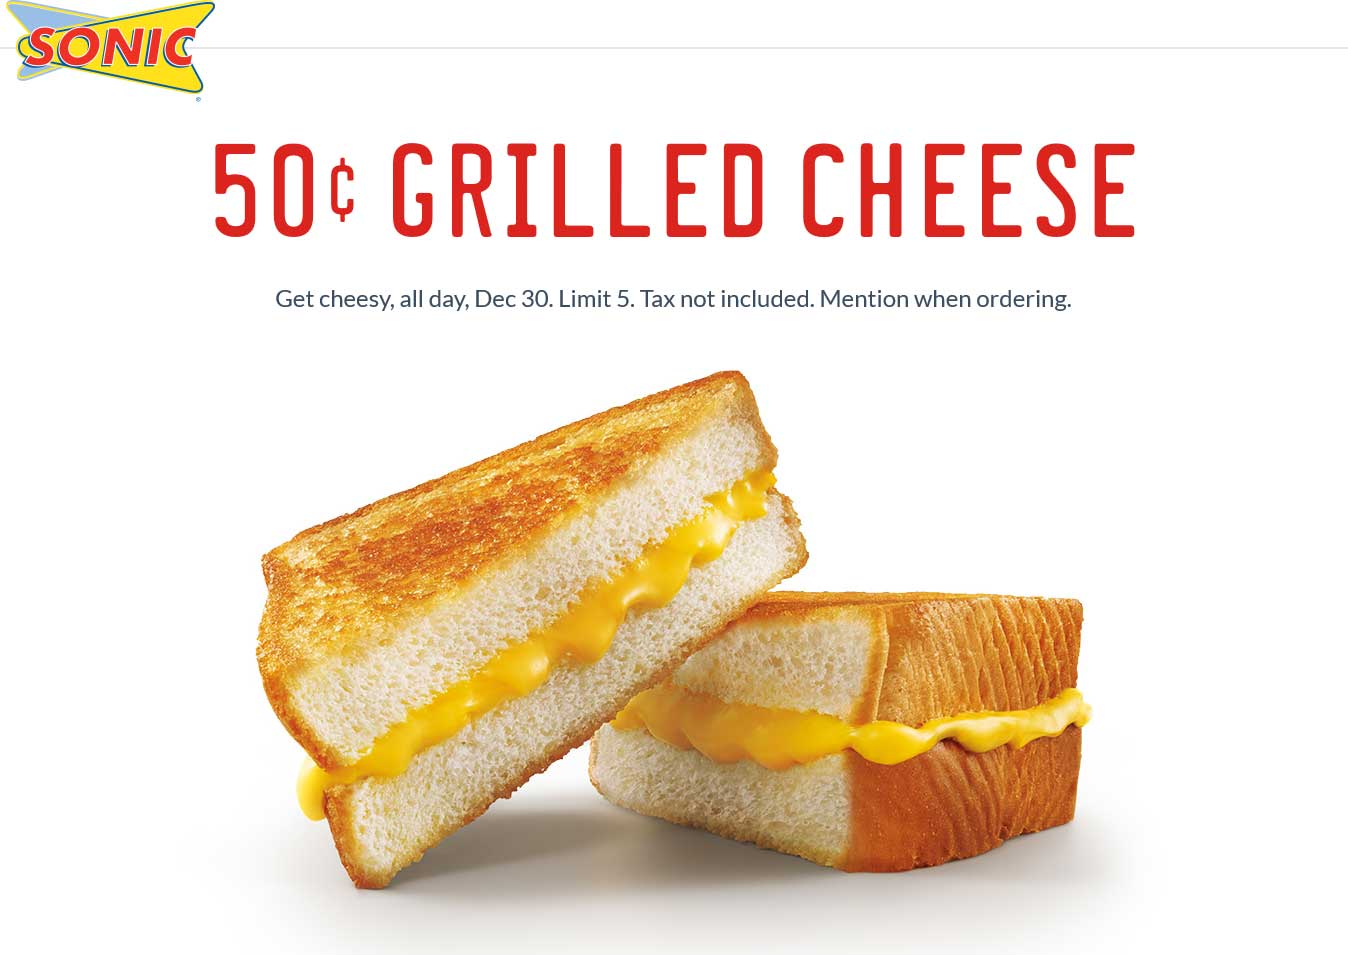 Sonic Drive-In Coupon April 2018 Grilled cheese for .50 cents Wednesday at Sonic Drive-In